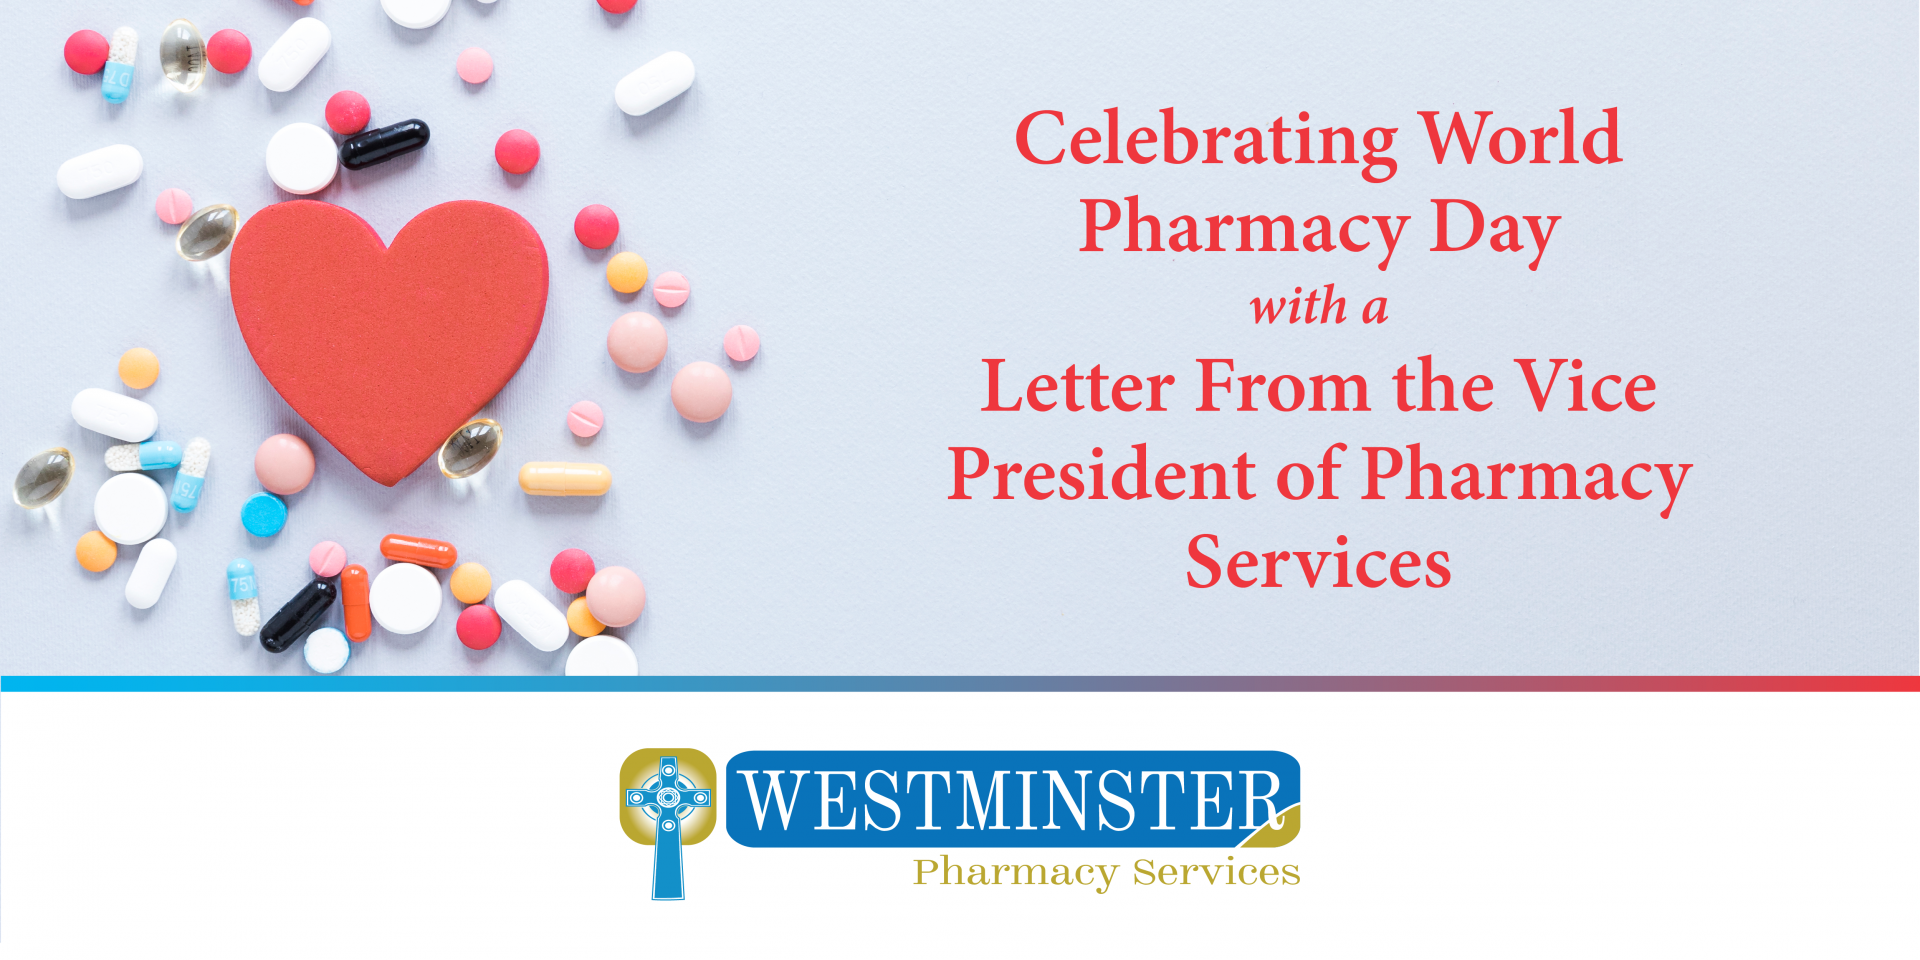 Celebrating International Pharmacy Day With a  Letter From the Vice President of Pharmacy Services